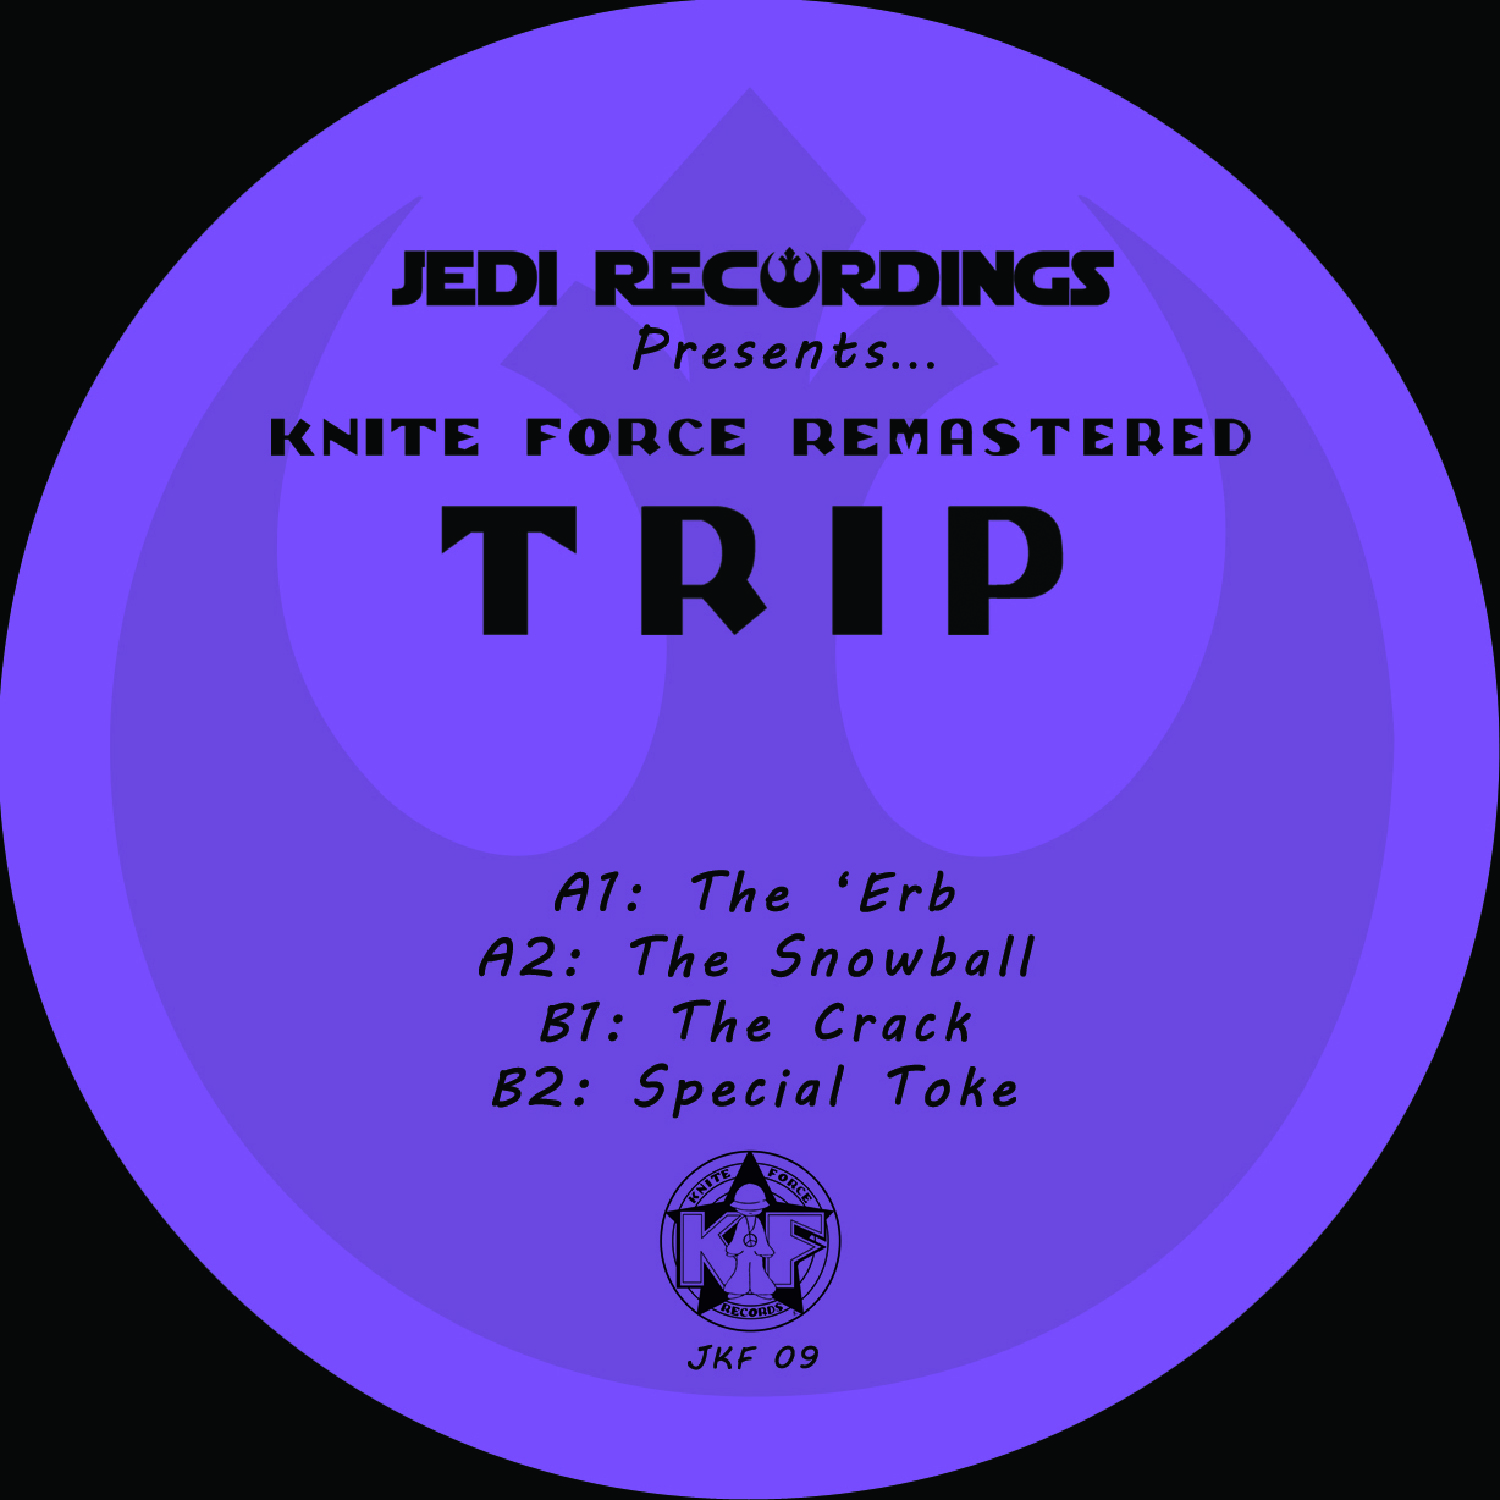 "[JKF09] The Trip - Remastered (12"" Vinyl + Digital)"